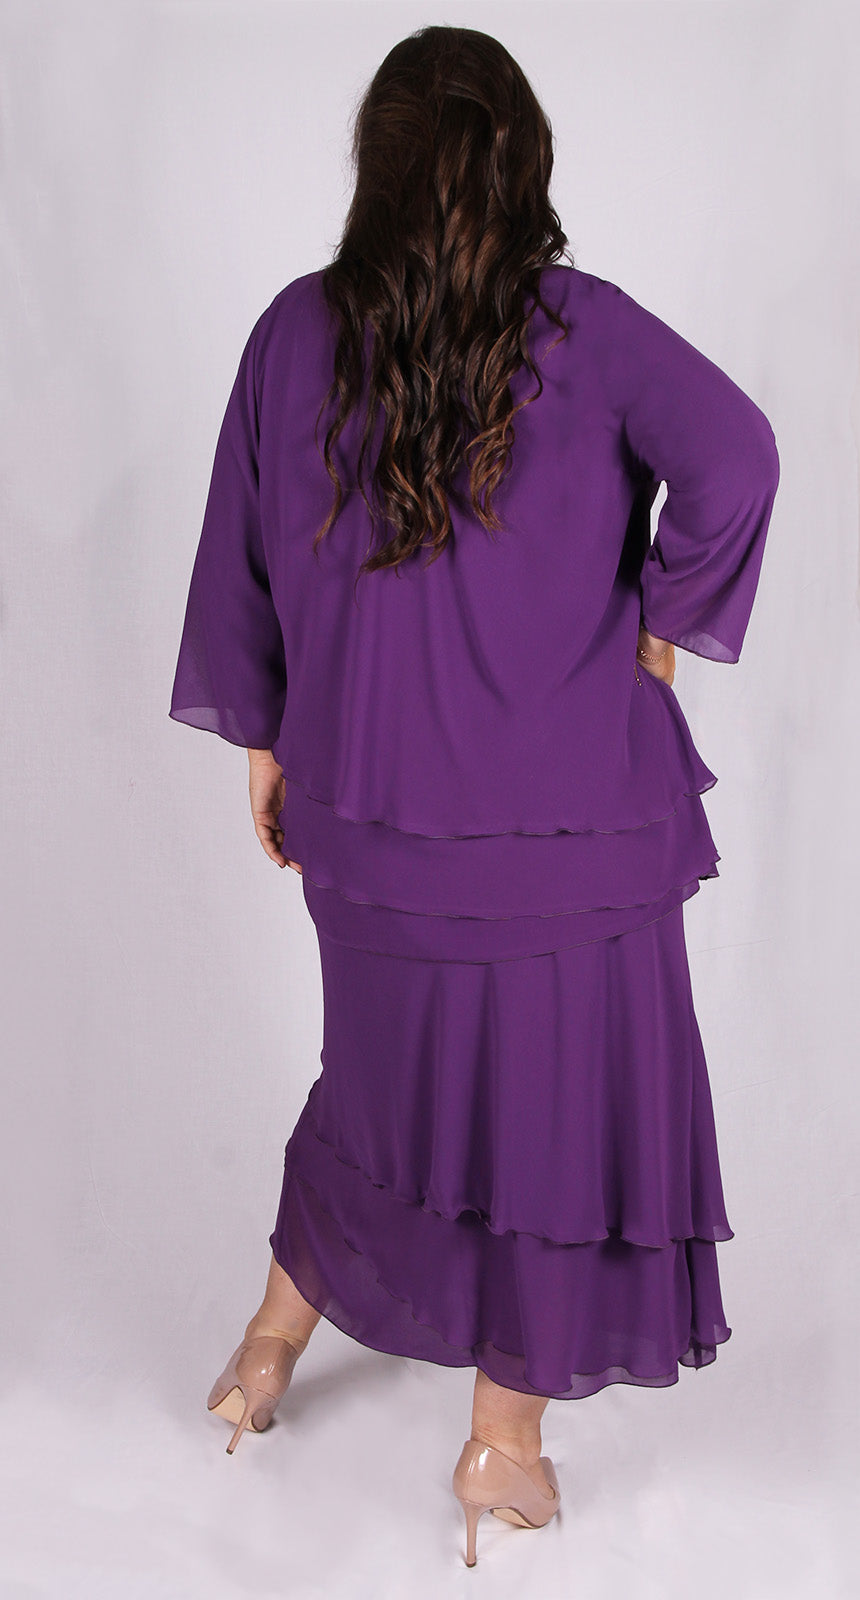 Rosaline Chiffon Layer Skirt Plum